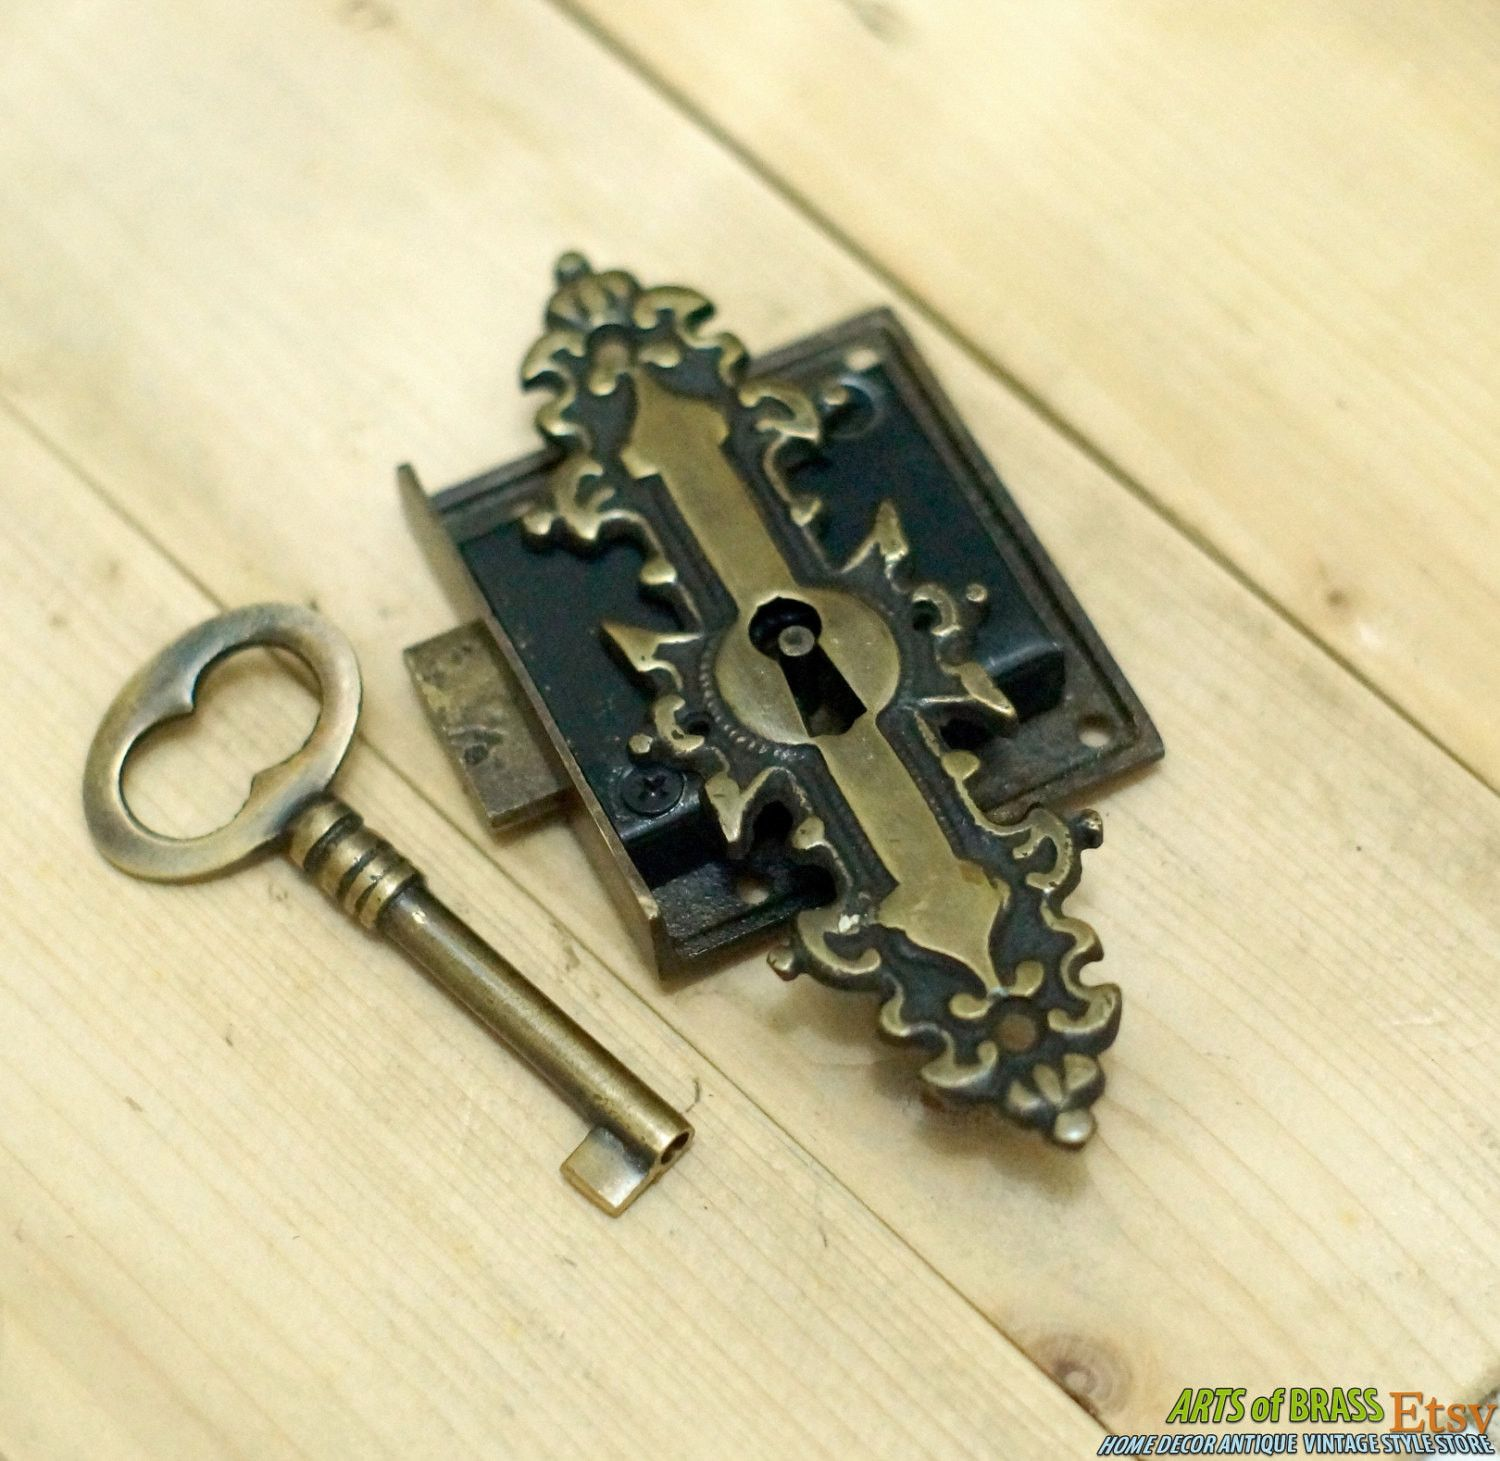 50+ Antique Cabinet Locks and Keys - Chalkboard Ideas for Kitchen Check  more at http - 50+ Antique Cabinet Locks And Keys - Chalkboard Ideas For Kitchen